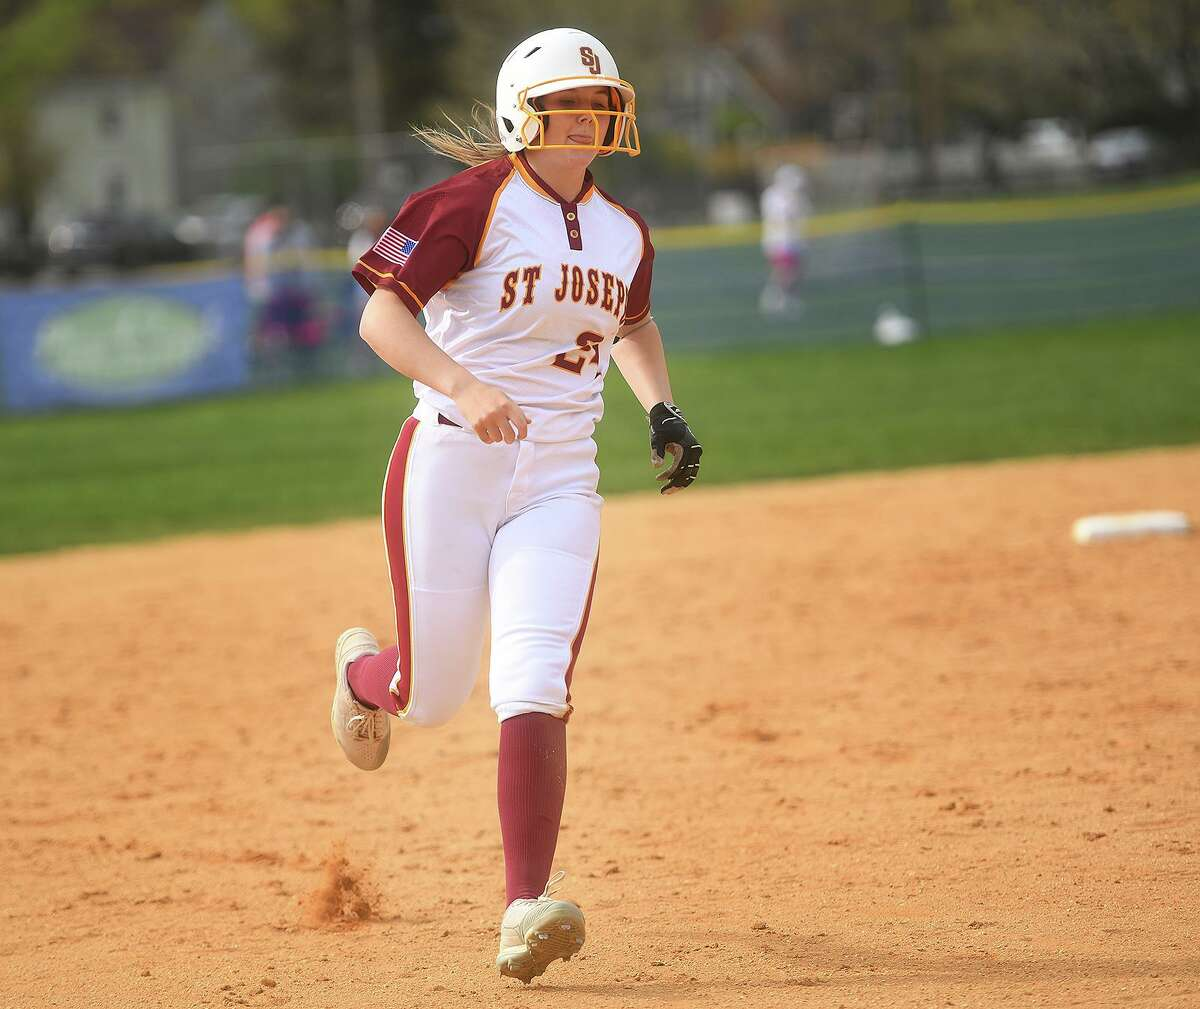 St. Joseph's Maddy Fitzgerald rounds third base after clocking a 3rd inning home run during their FCIAC softball game with Fairfield Ludlowe at Sturges Park in Fairfield, Conn. on Wednesday, April 28, 2021.